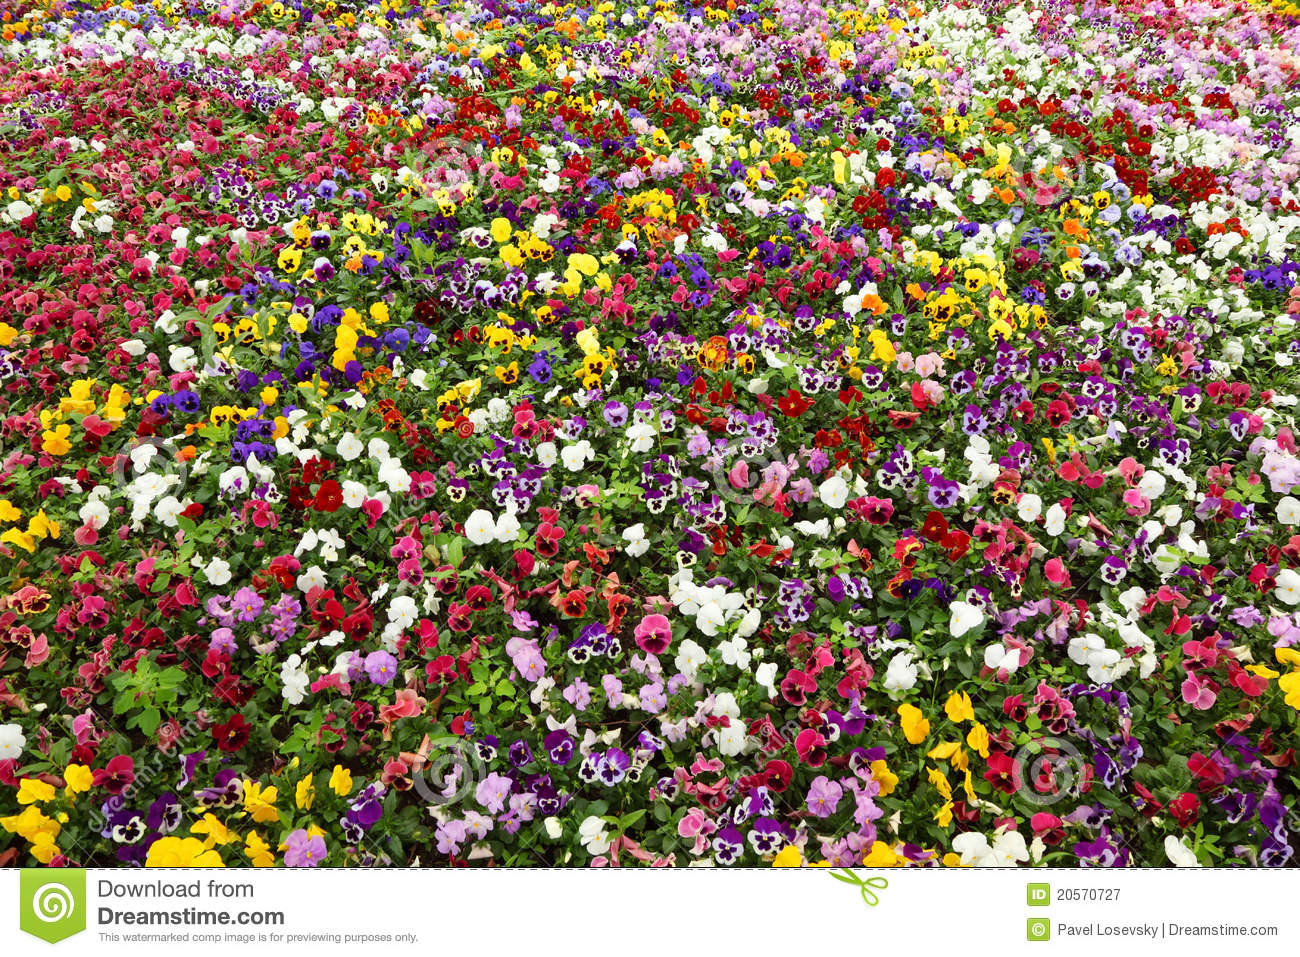 colorful flower carpet in park pansies royalty free stock photography image 20570727